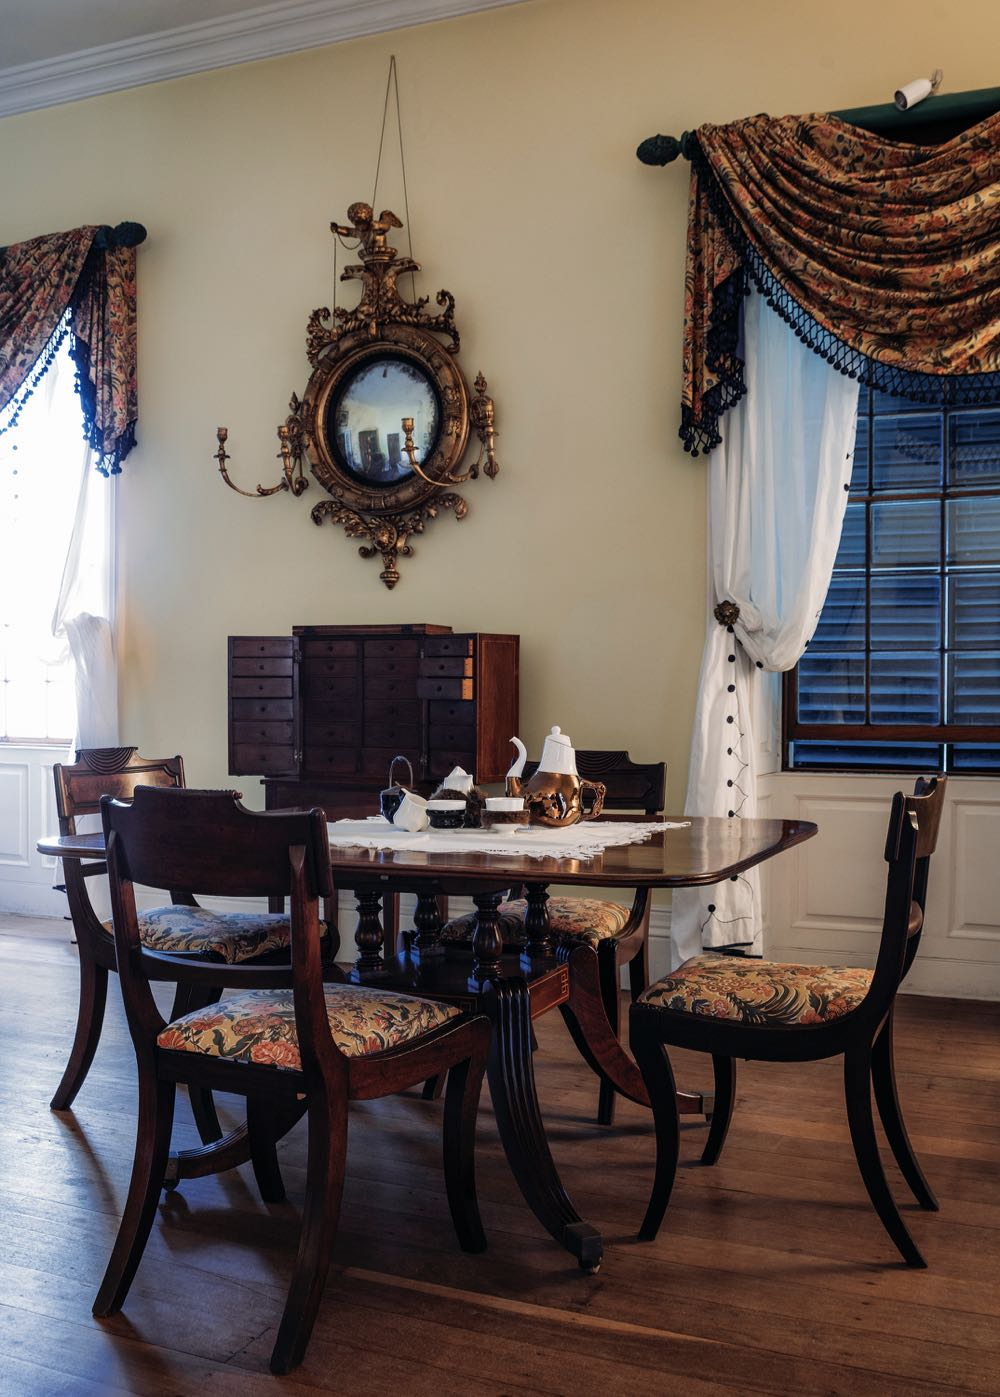 The music room of Old Government House contains a tale and chair setting for the taking of tea. Here Trent Jansen's 'Briggs Family Tea Service' finds it's natural place.